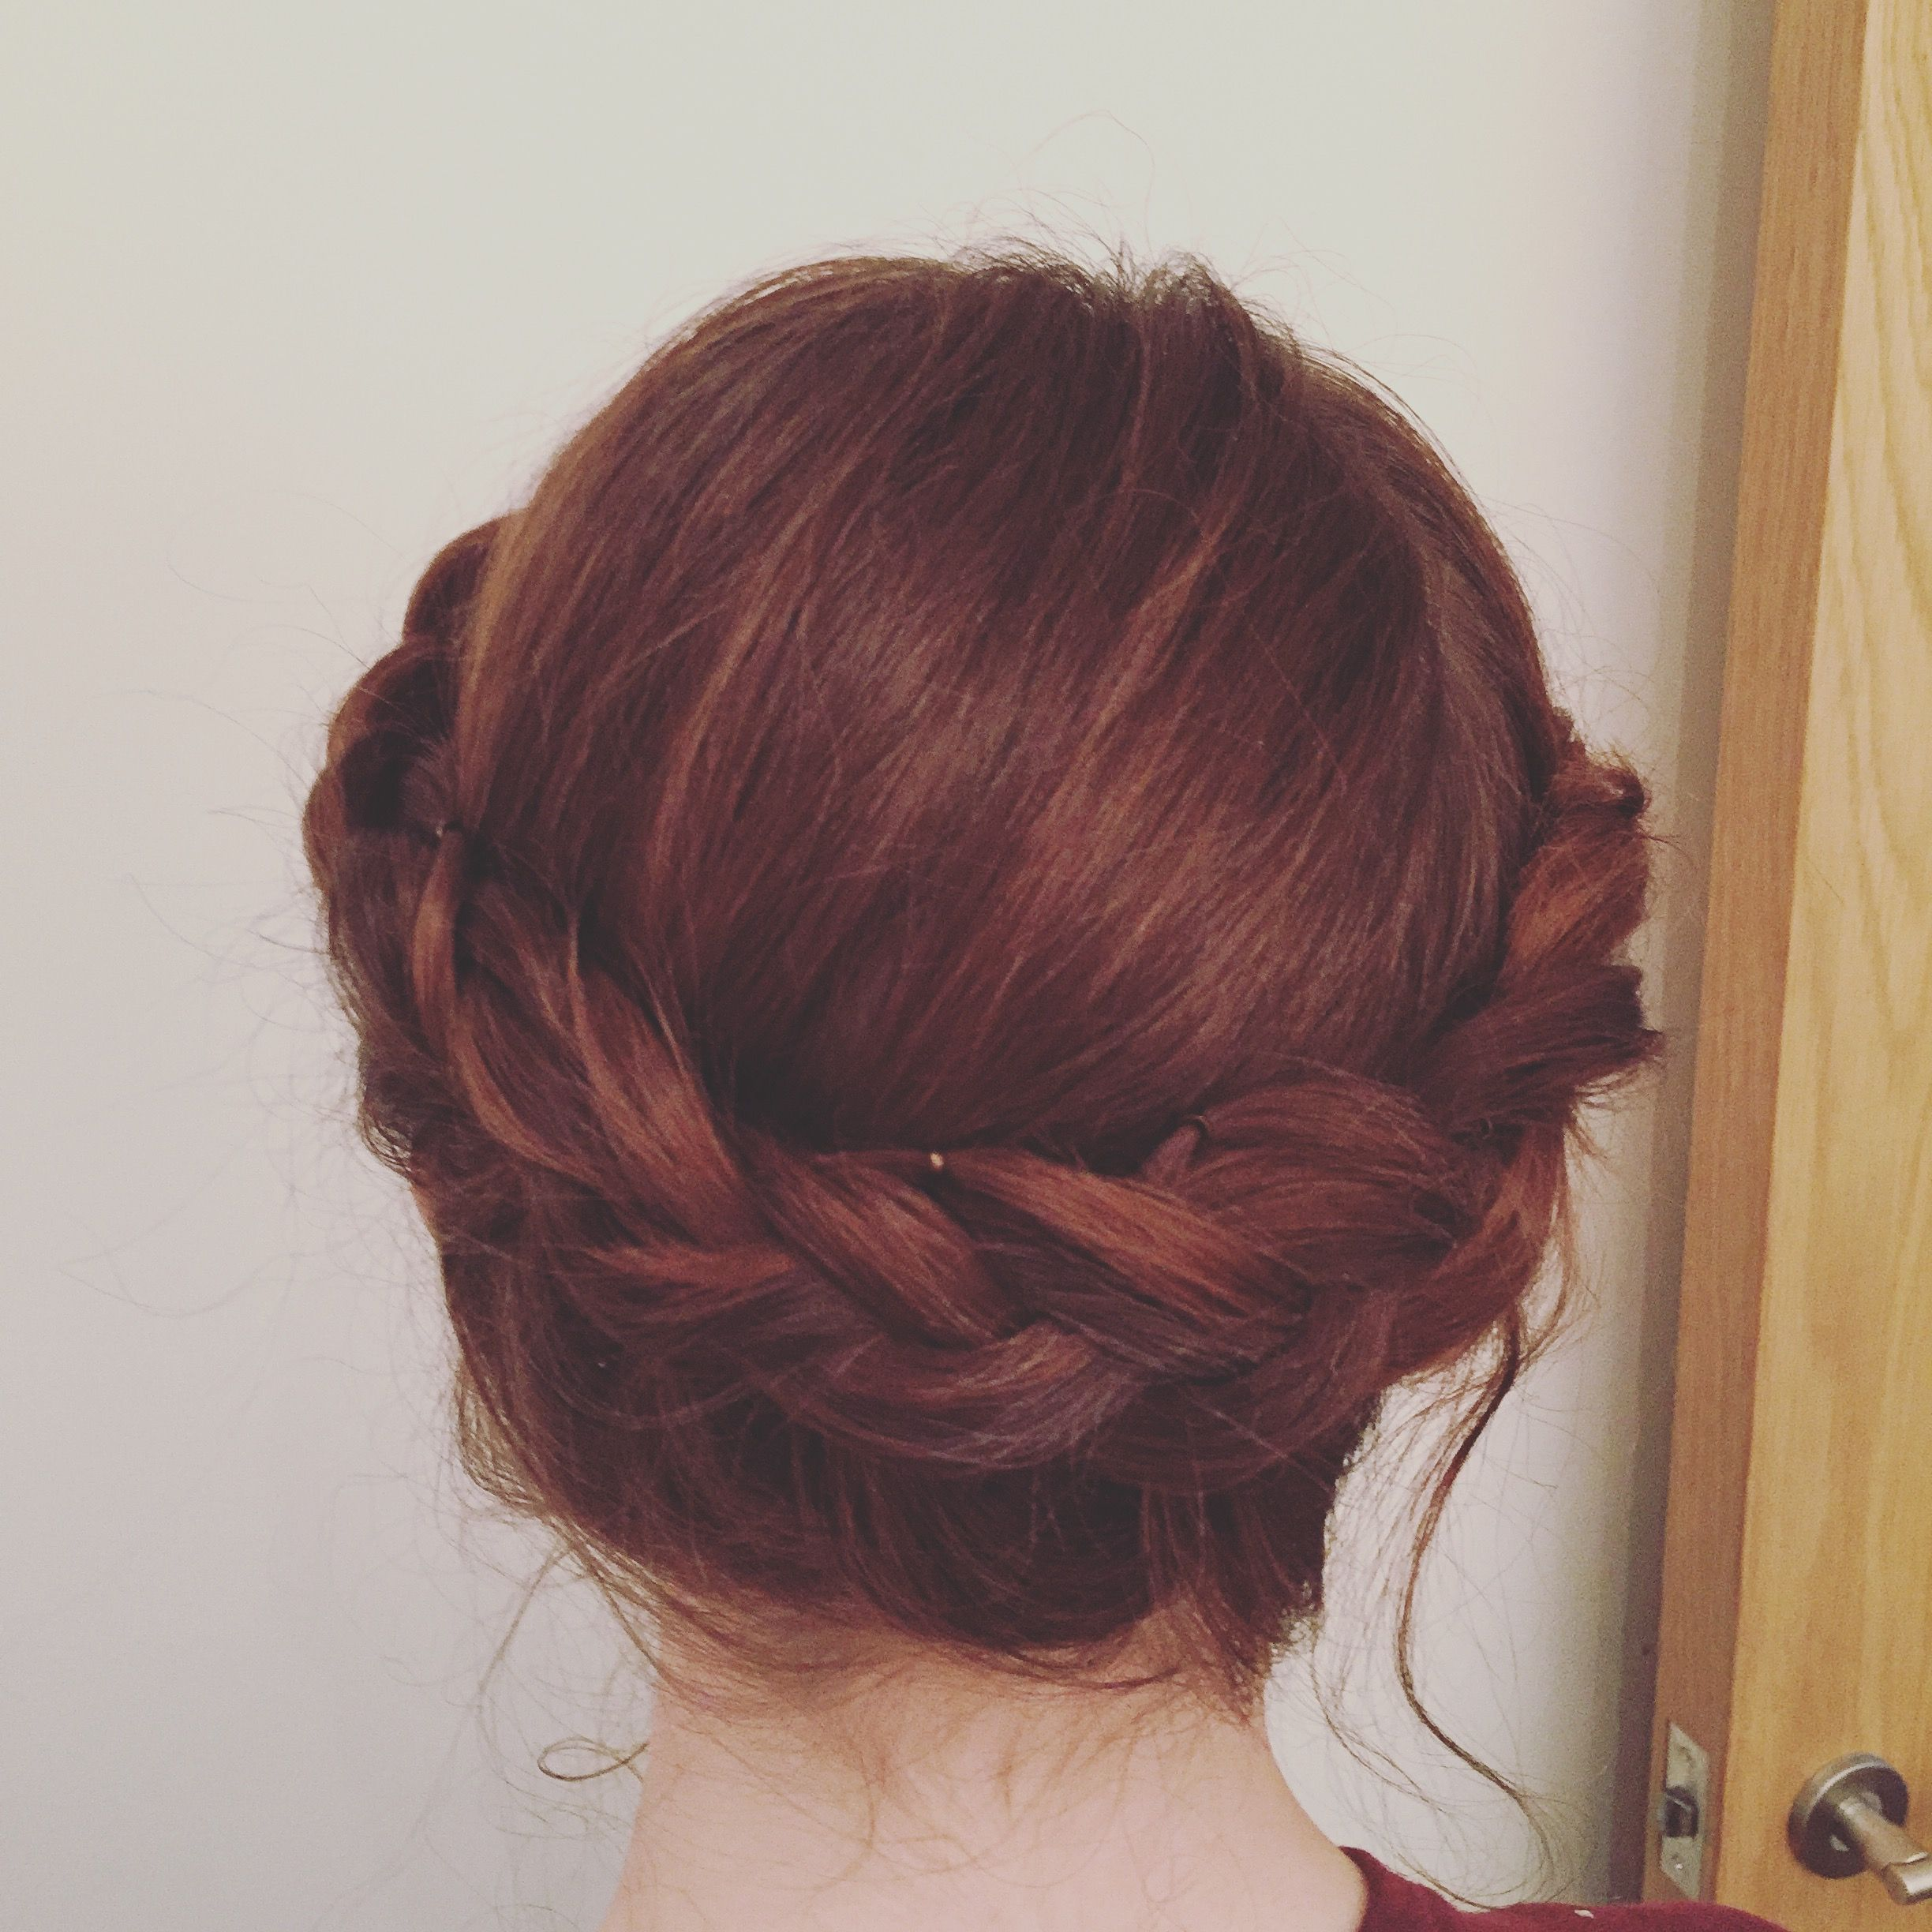 Beautiful festival Hairstyling with a Dutch tail braid